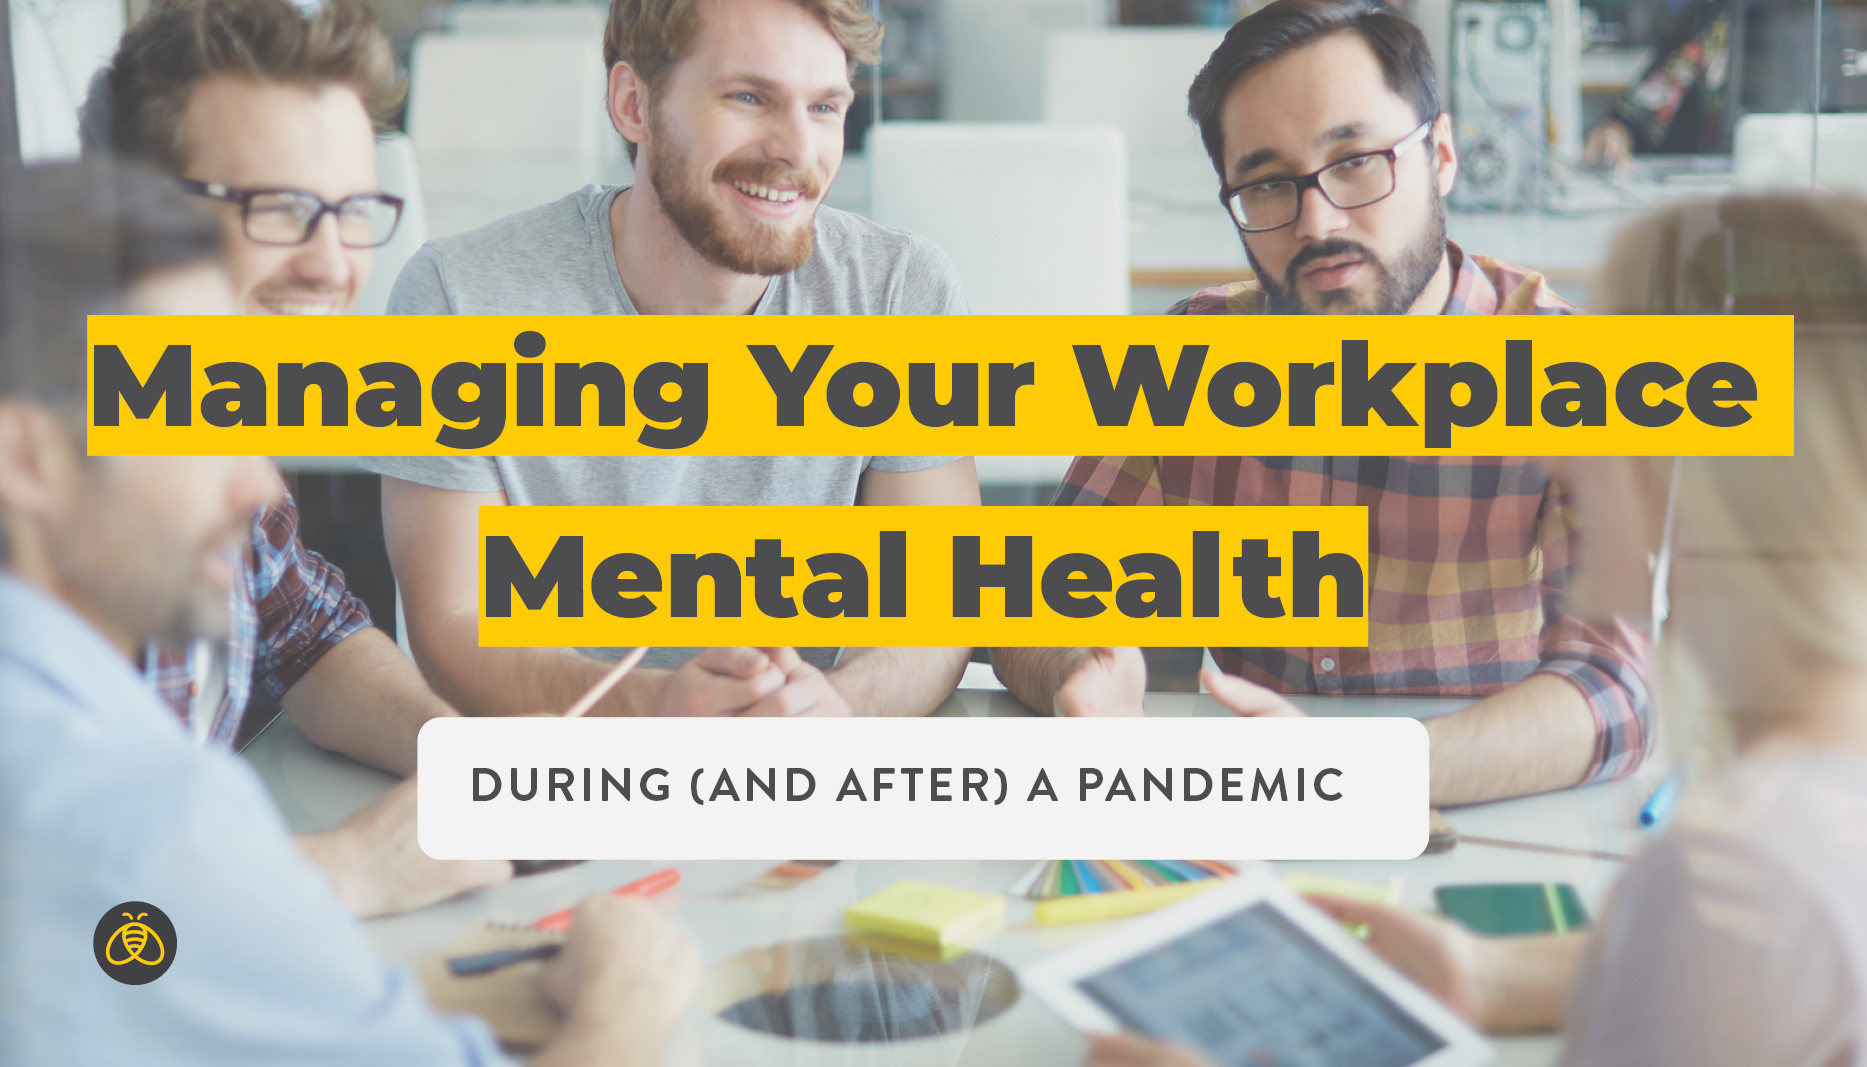 Managing Your Workplace Mental Health During (and After) a Pandemic | Benefits by Design